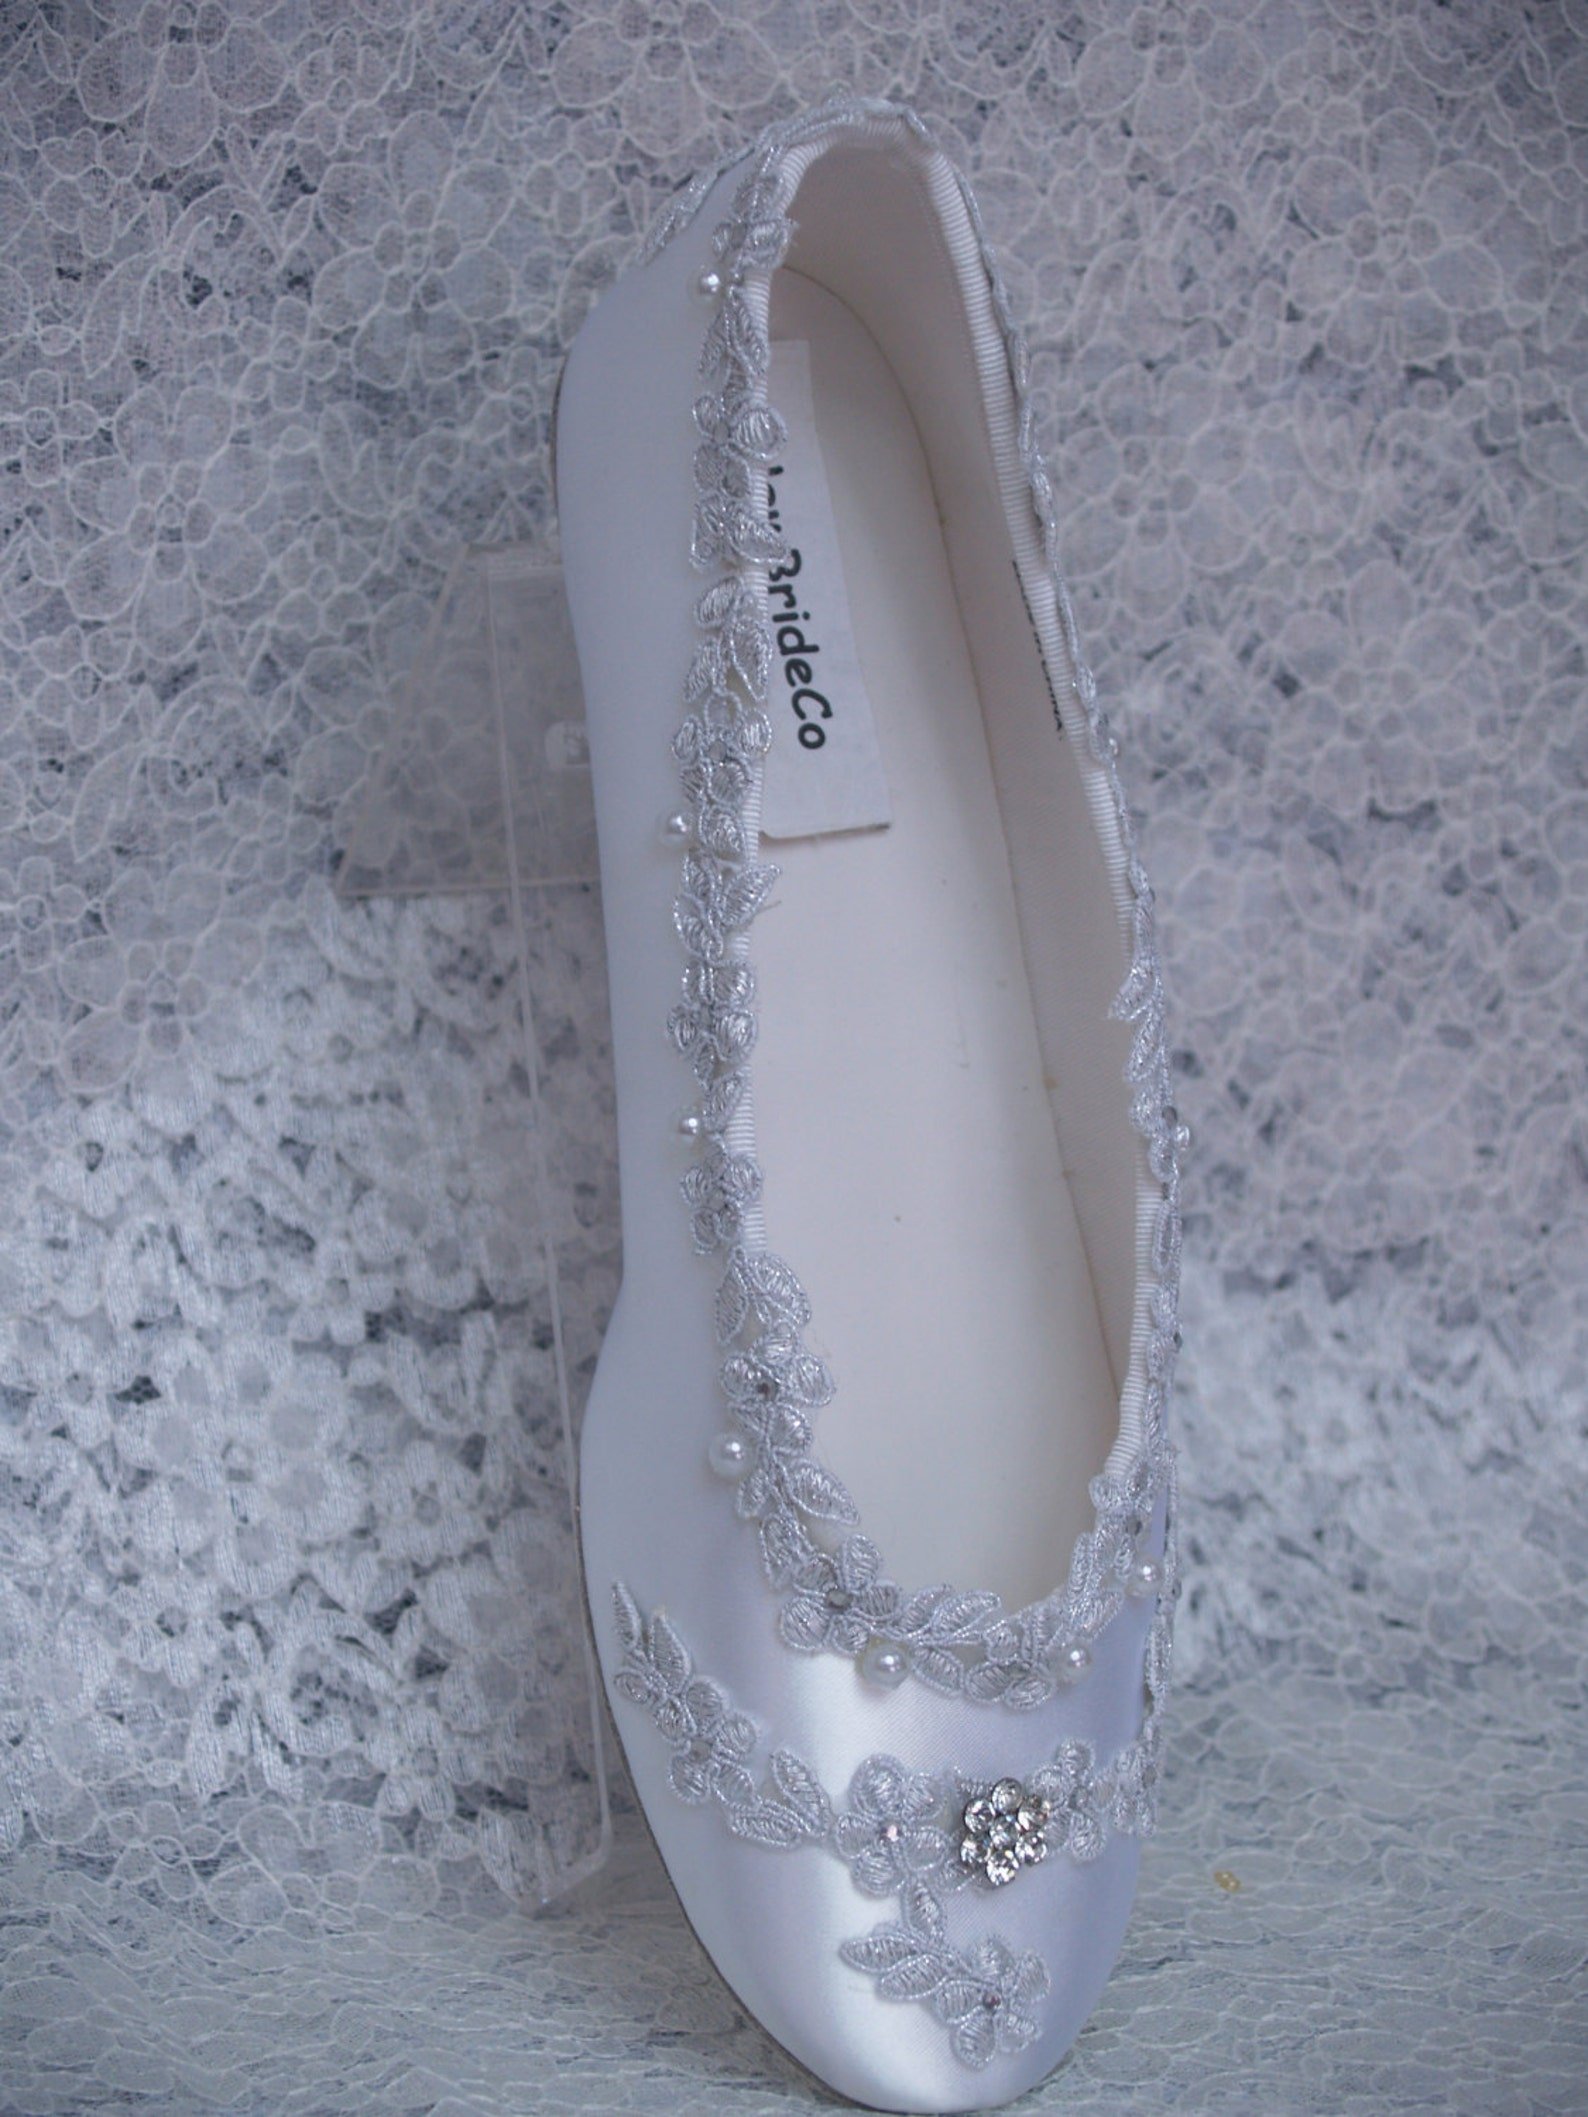 size 8 1/2 wedding flats white shoes silver venice lace edging w crystals,ballet style slipper,silver lace pearls & crystals,rea